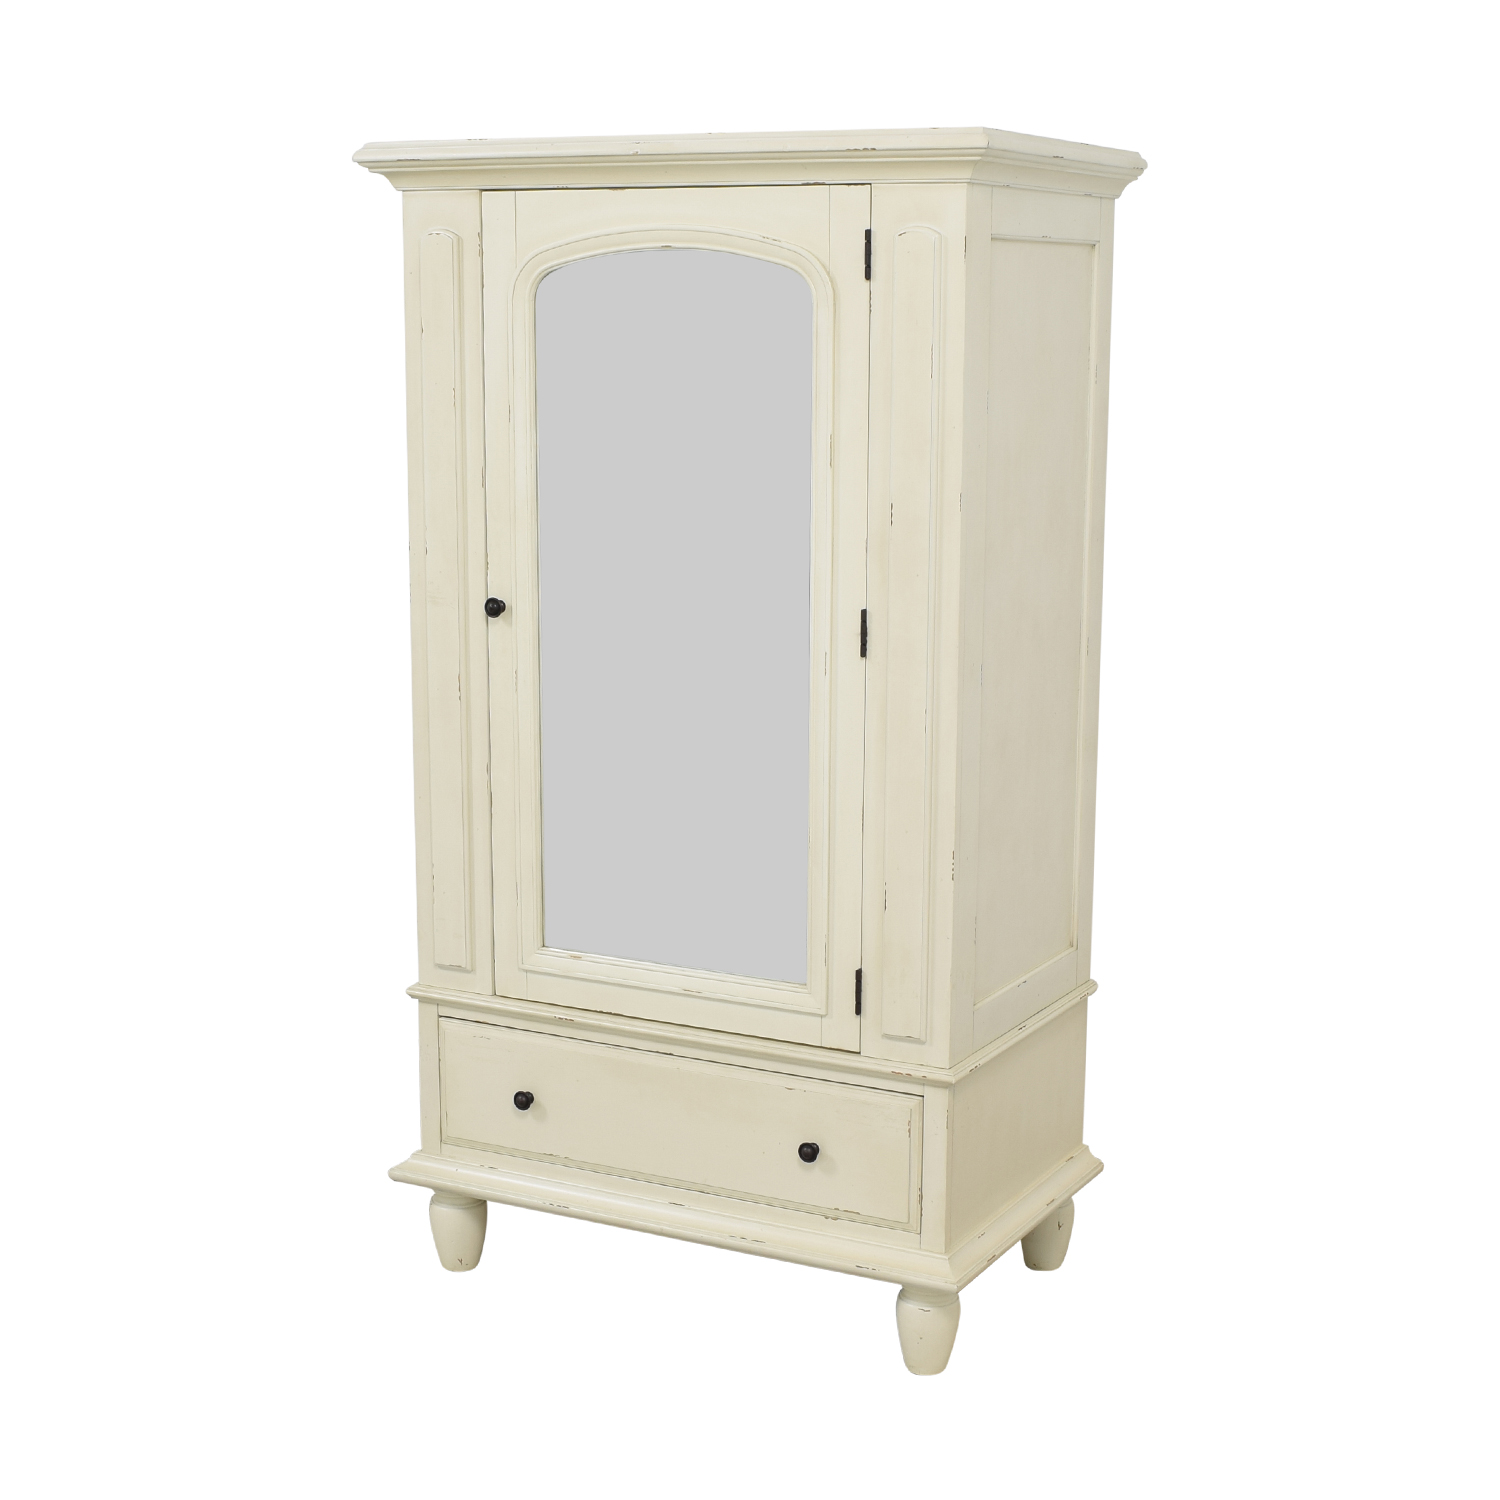 80 Off Pottery Barn Pottery Barn Mirrored Armoire Storage